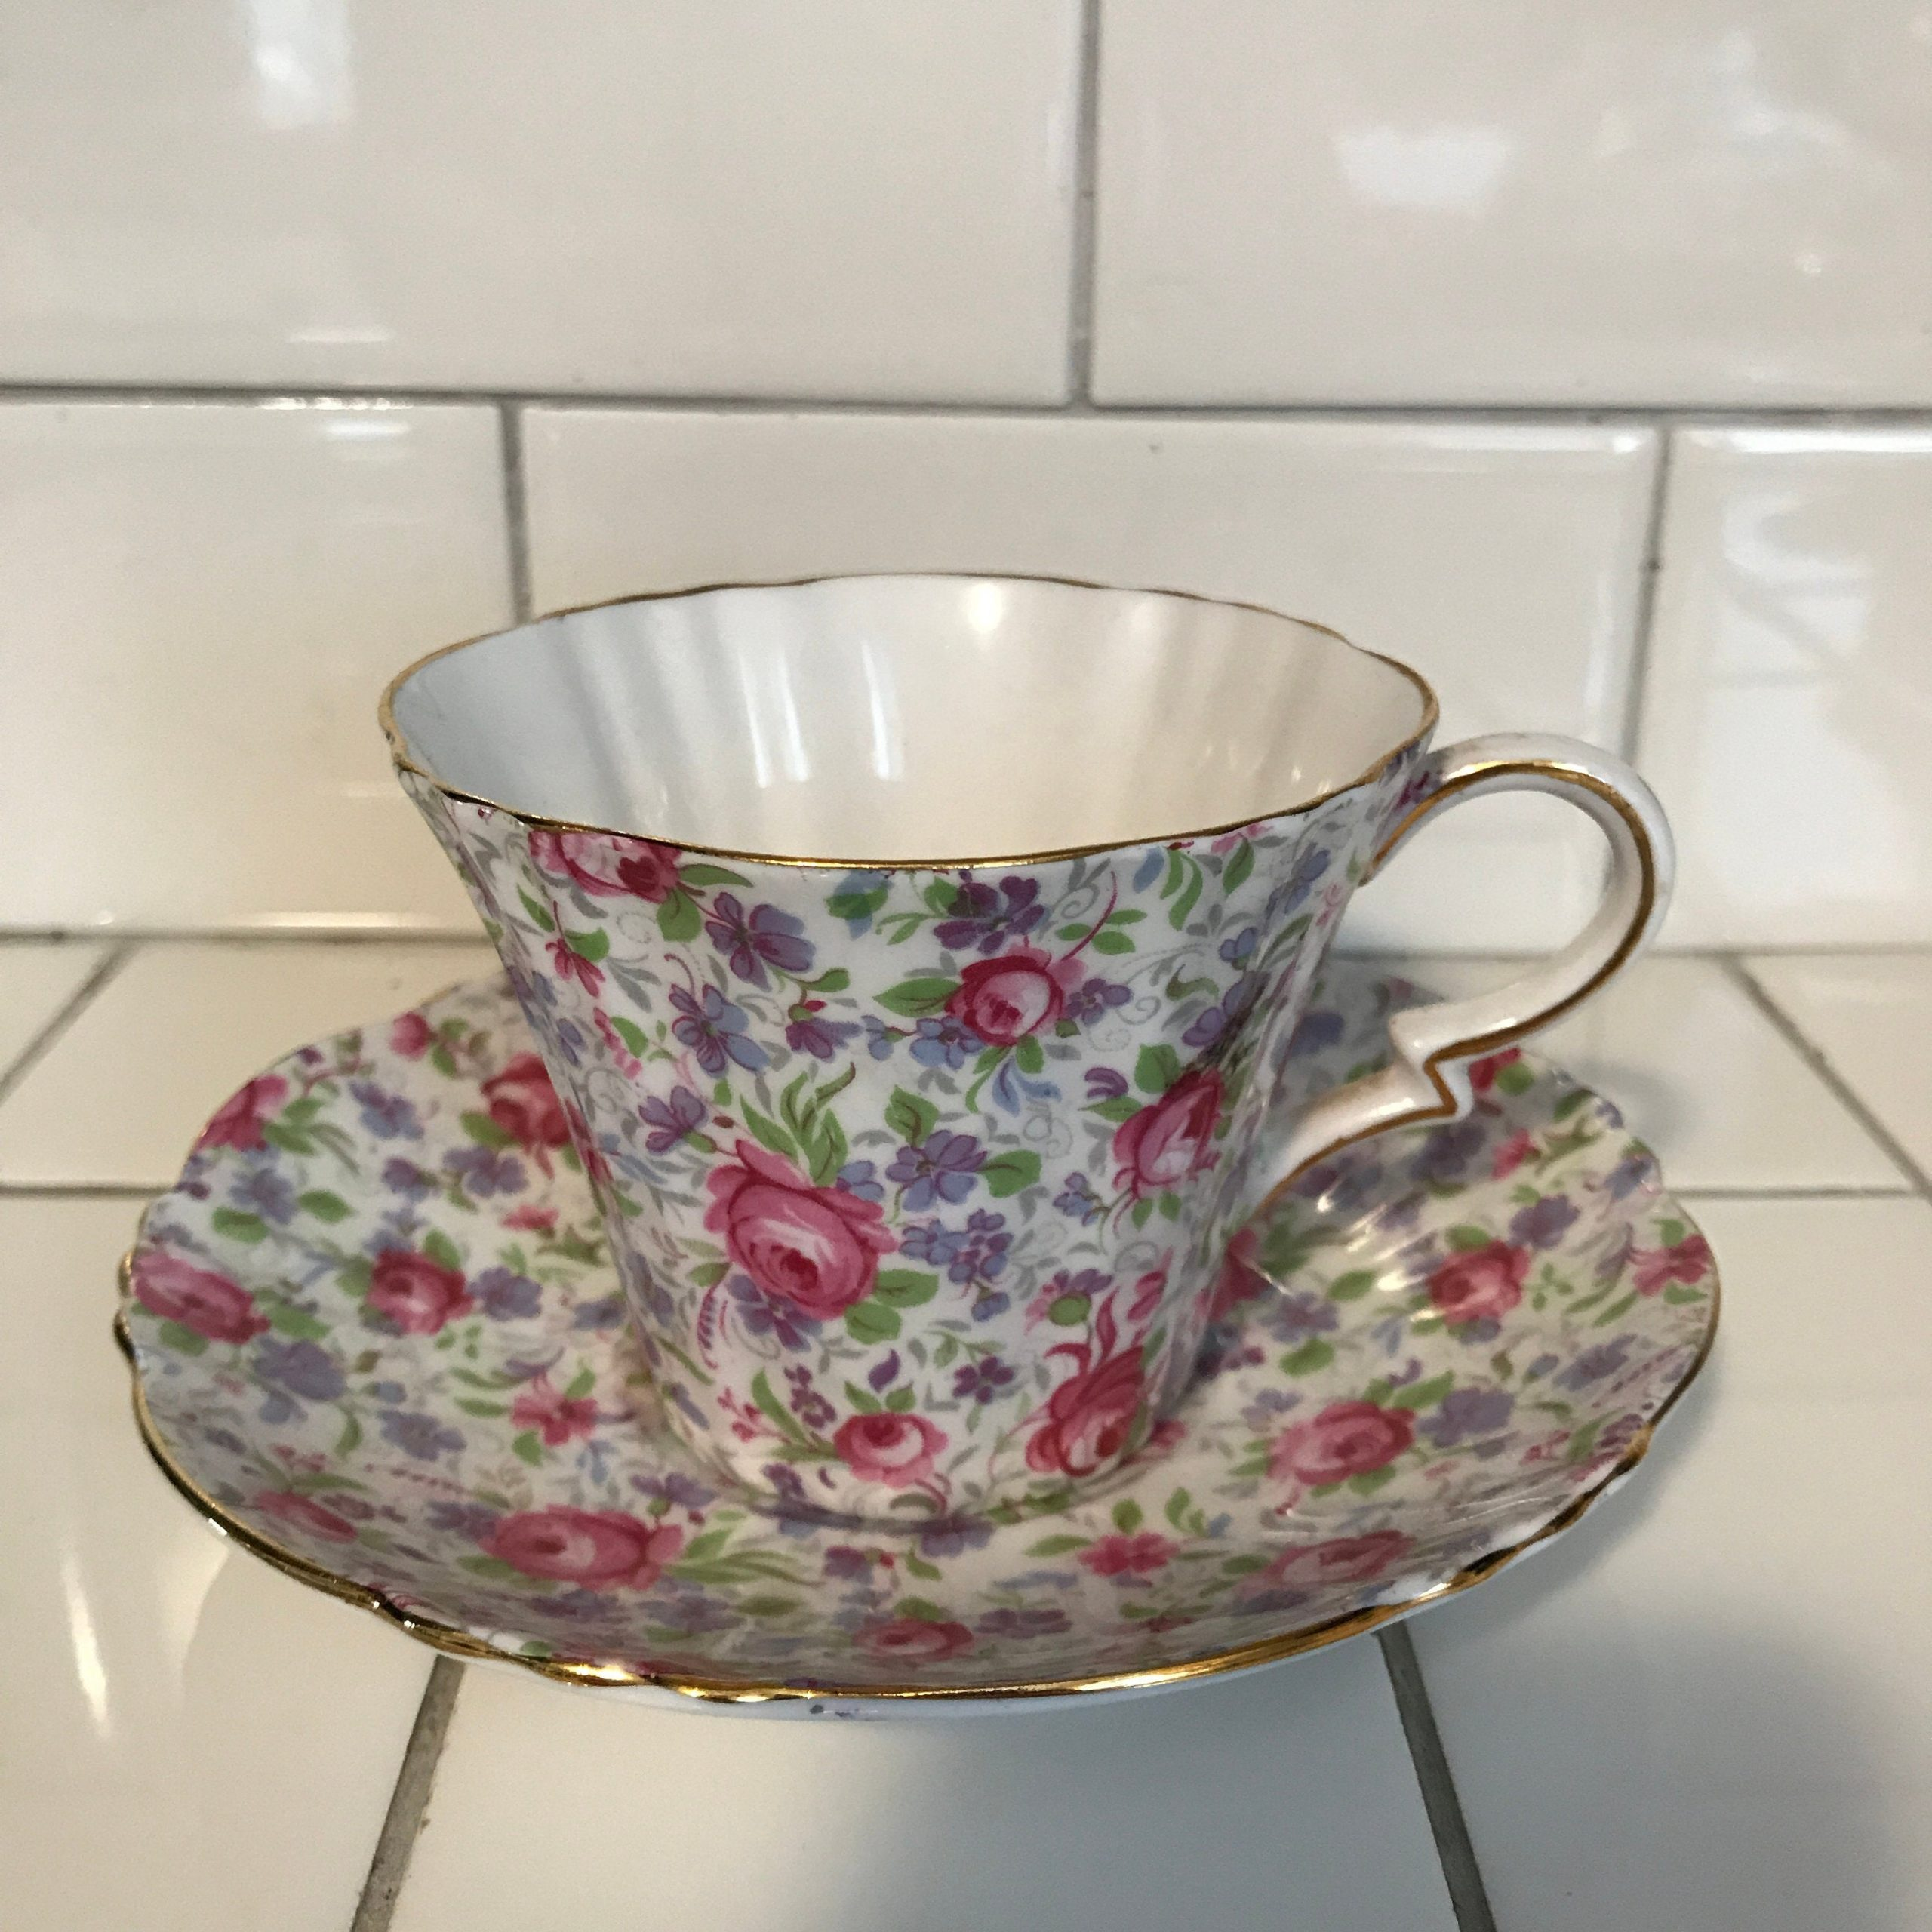 Royal Standard Tea Cup And Saucer England Fine Bone China Chintz Pink Cabbage Rose Farmhouse Collectible Display Coffee Carol S True Vintage And Antiques